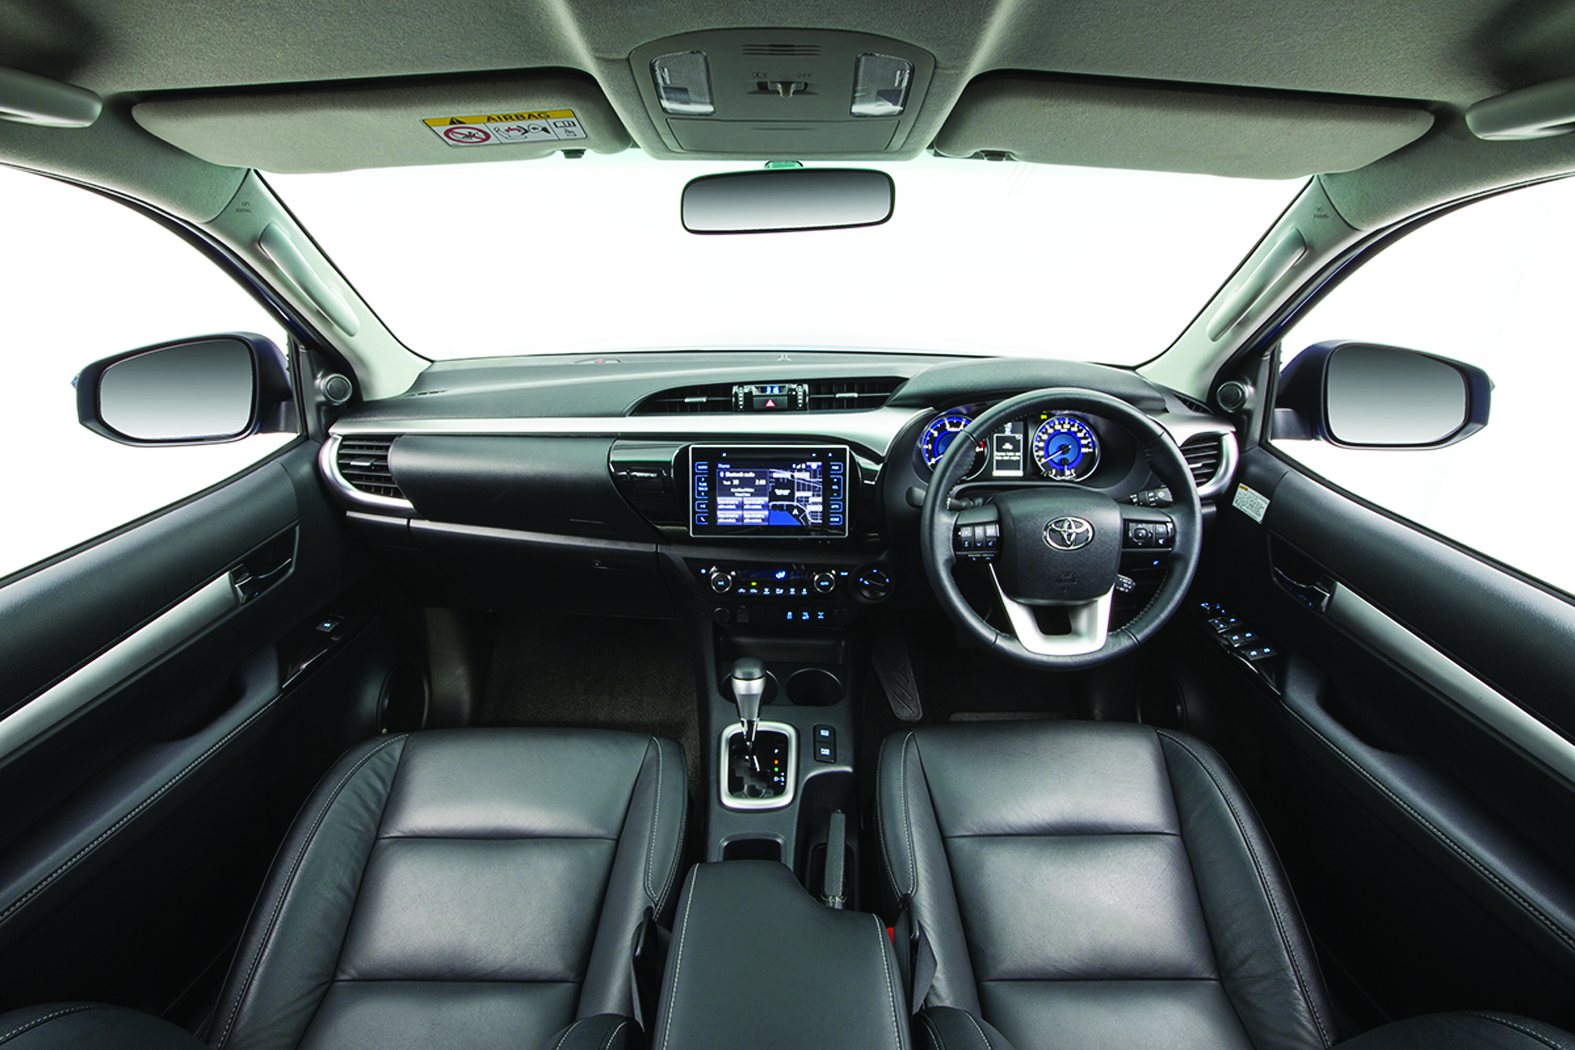 The interior is not only modern, it is jam packed with features.